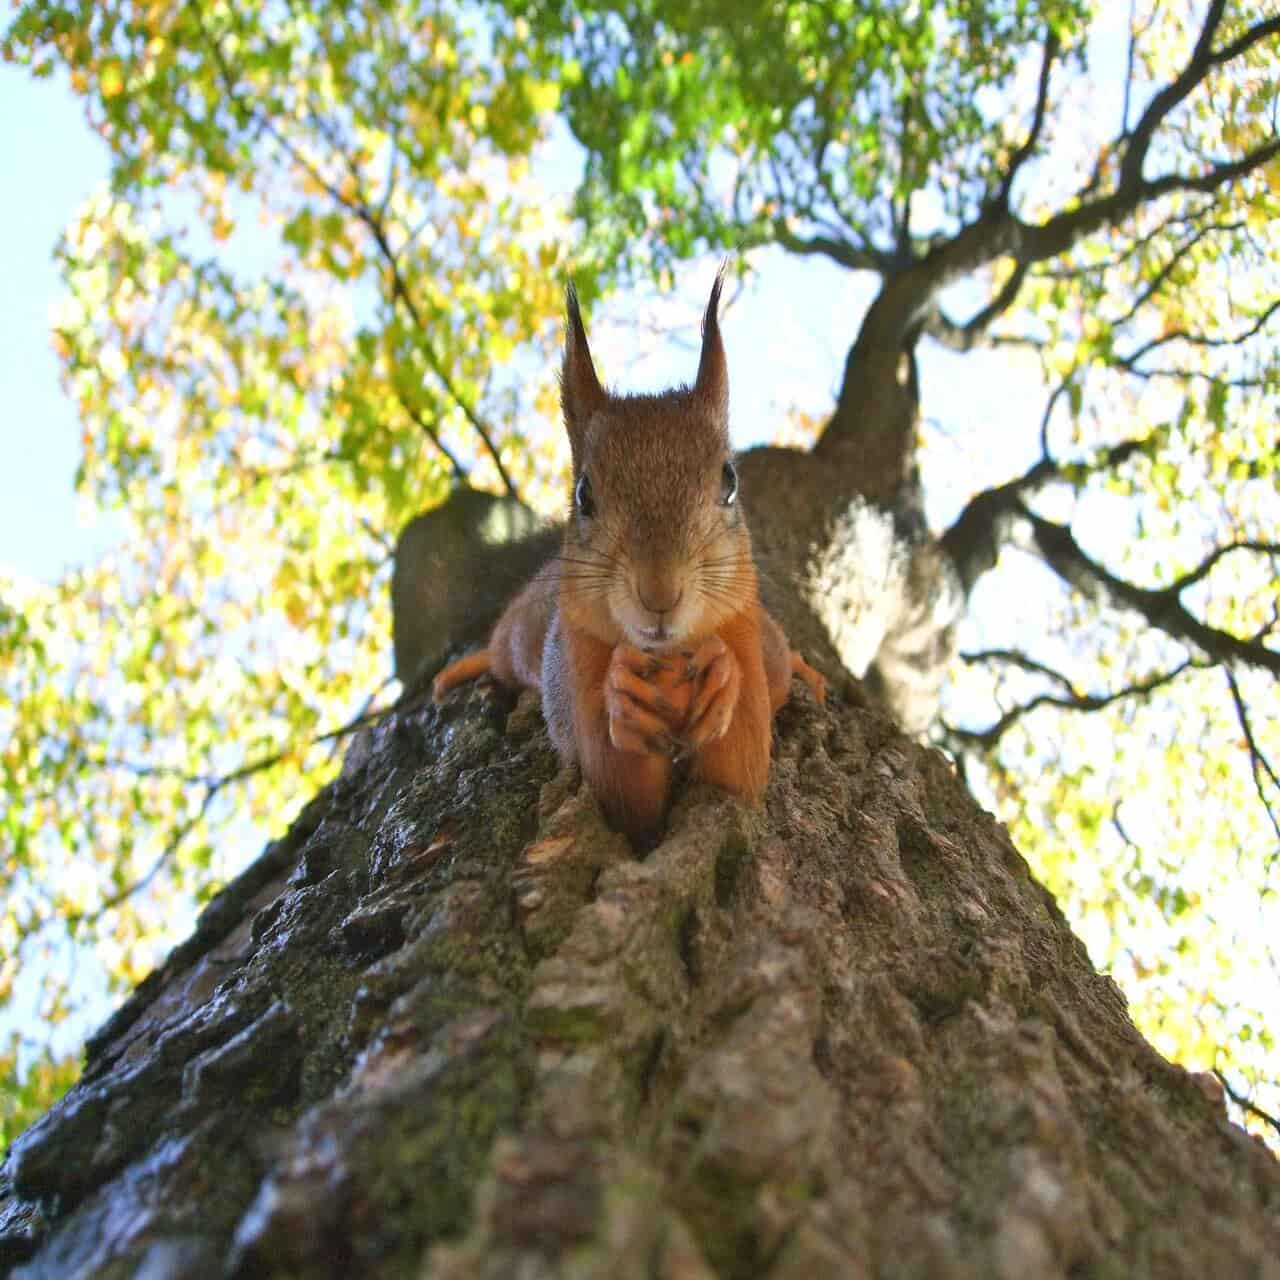 Red squirrels are interesting as well as adorable.